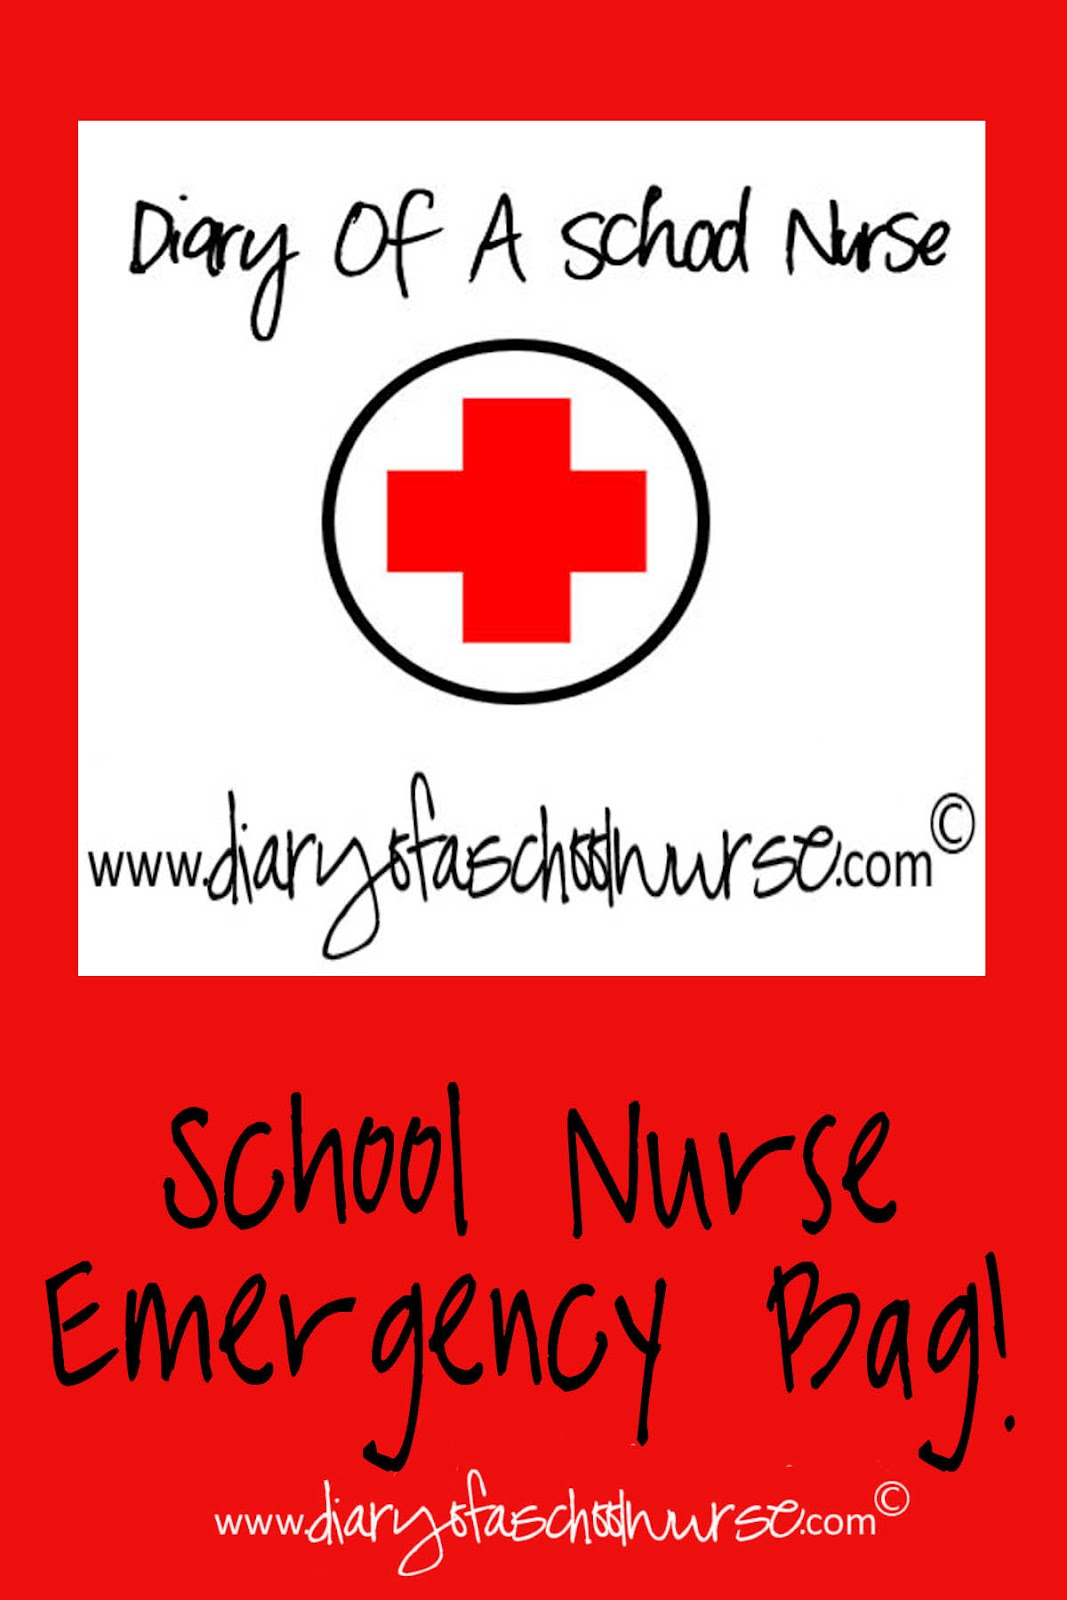 Role of the School Nurse in Providing School Health Services